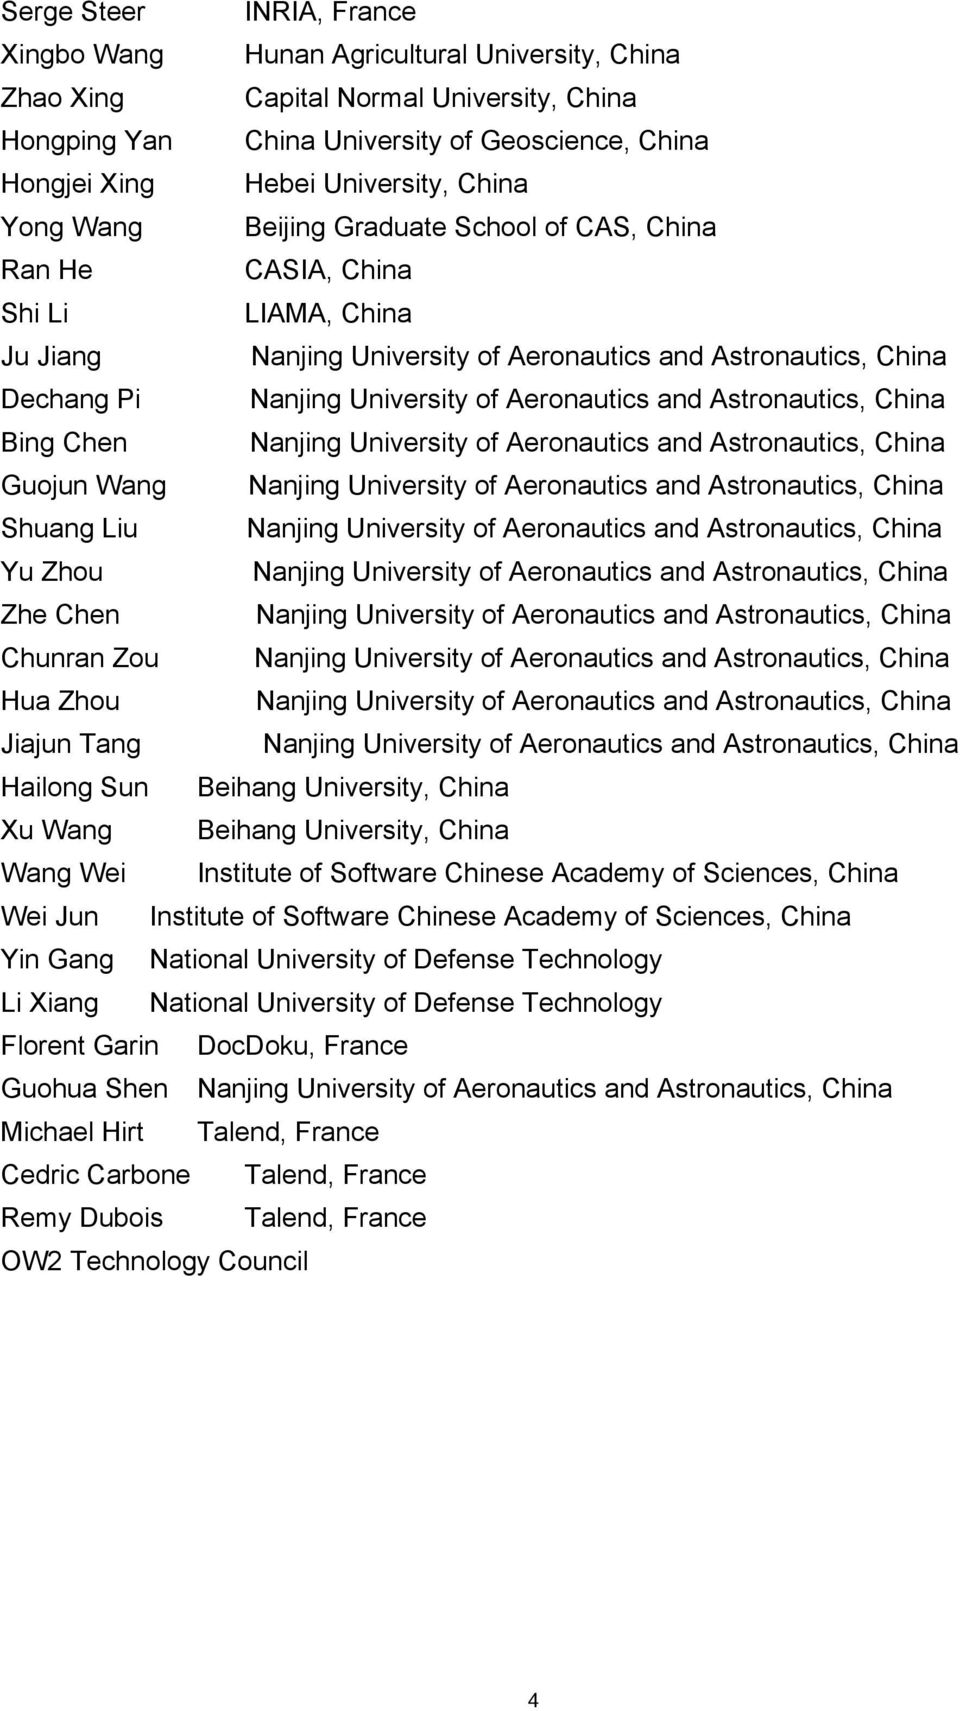 Aeronautics and Astronautics, China Bing Chen Nanjing University of Aeronautics and Astronautics, China Guojun Wang Nanjing University of Aeronautics and Astronautics, China Shuang Liu Nanjing